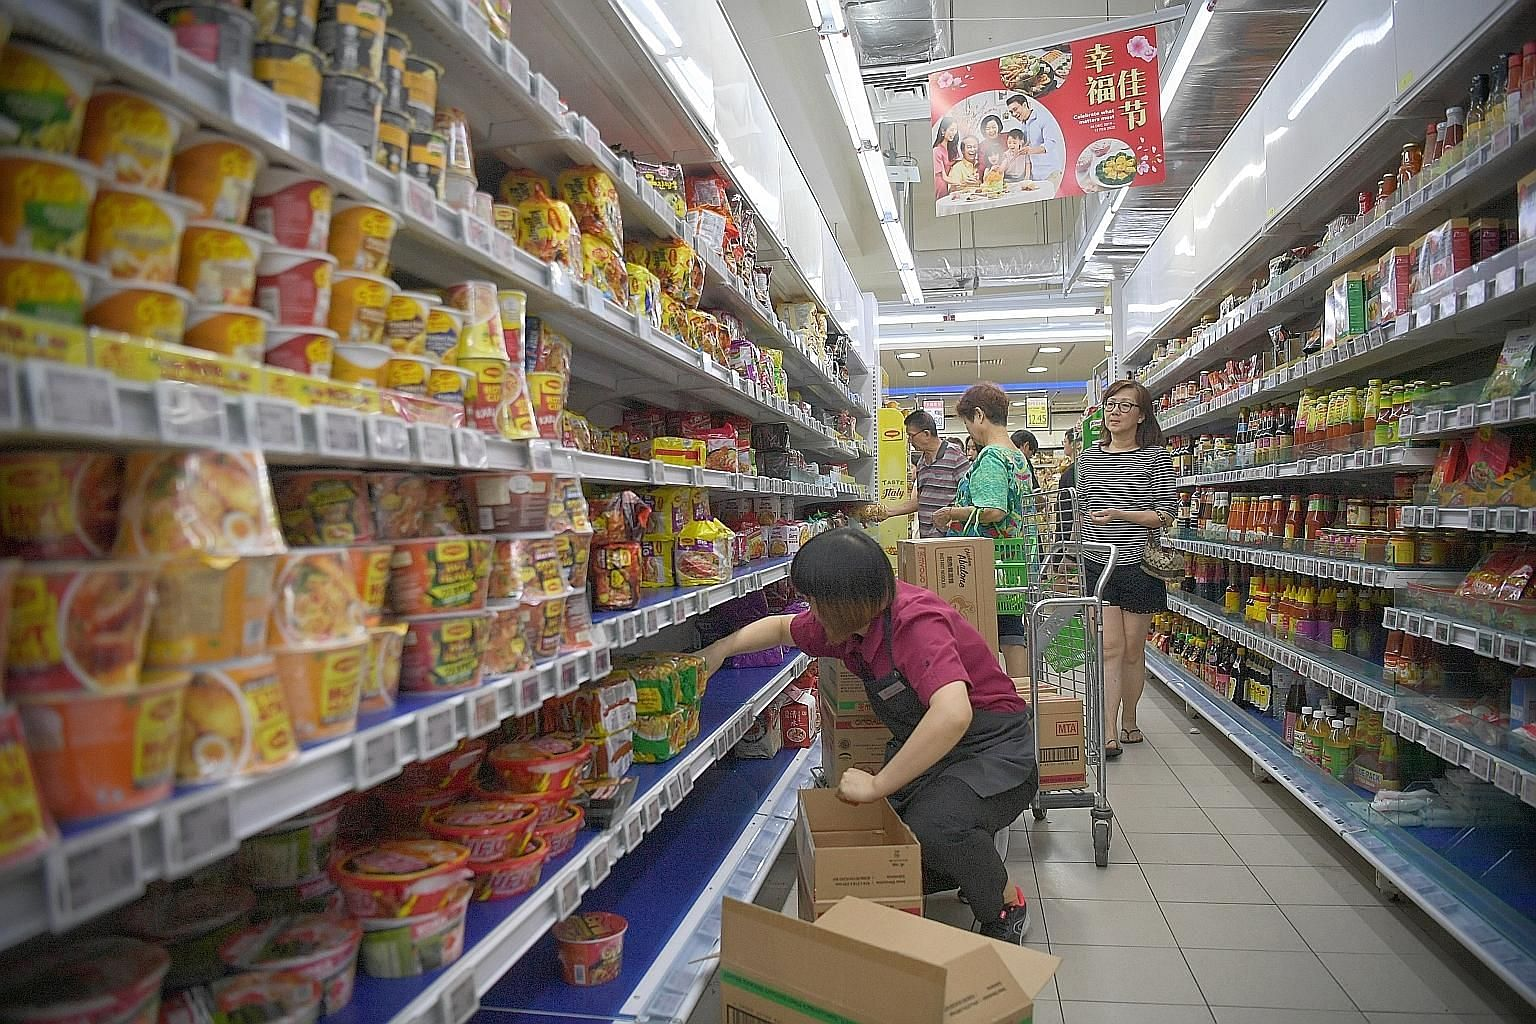 Shelves of daily essentials as well as instant noodles being refilled at a FairPrice outlet at Block 212 Bedok North Street 1.Price Finest outlet in Paya Lebar (above) walking past empty shelves last Saturday.